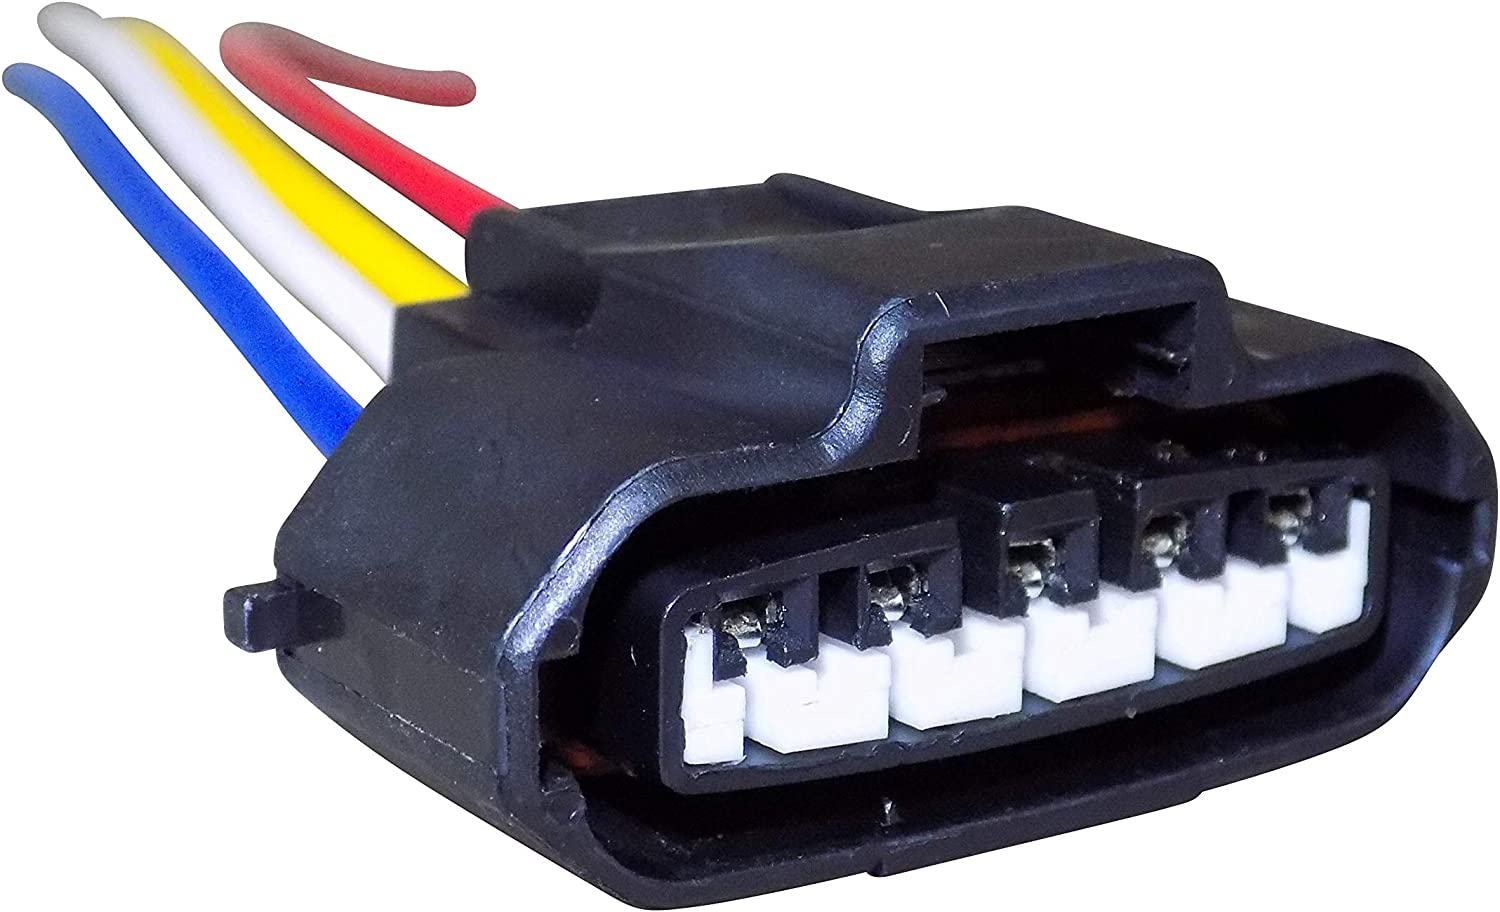 [SCHEMATICS_4HG]  Amazon.com: MAF Wiring Harness Pigtail Connector for 6.6l LB7 LLY LBZ  2001-2007 Duramax Chevy: Automotive   Lbz Wiring Harness      Amazon.com